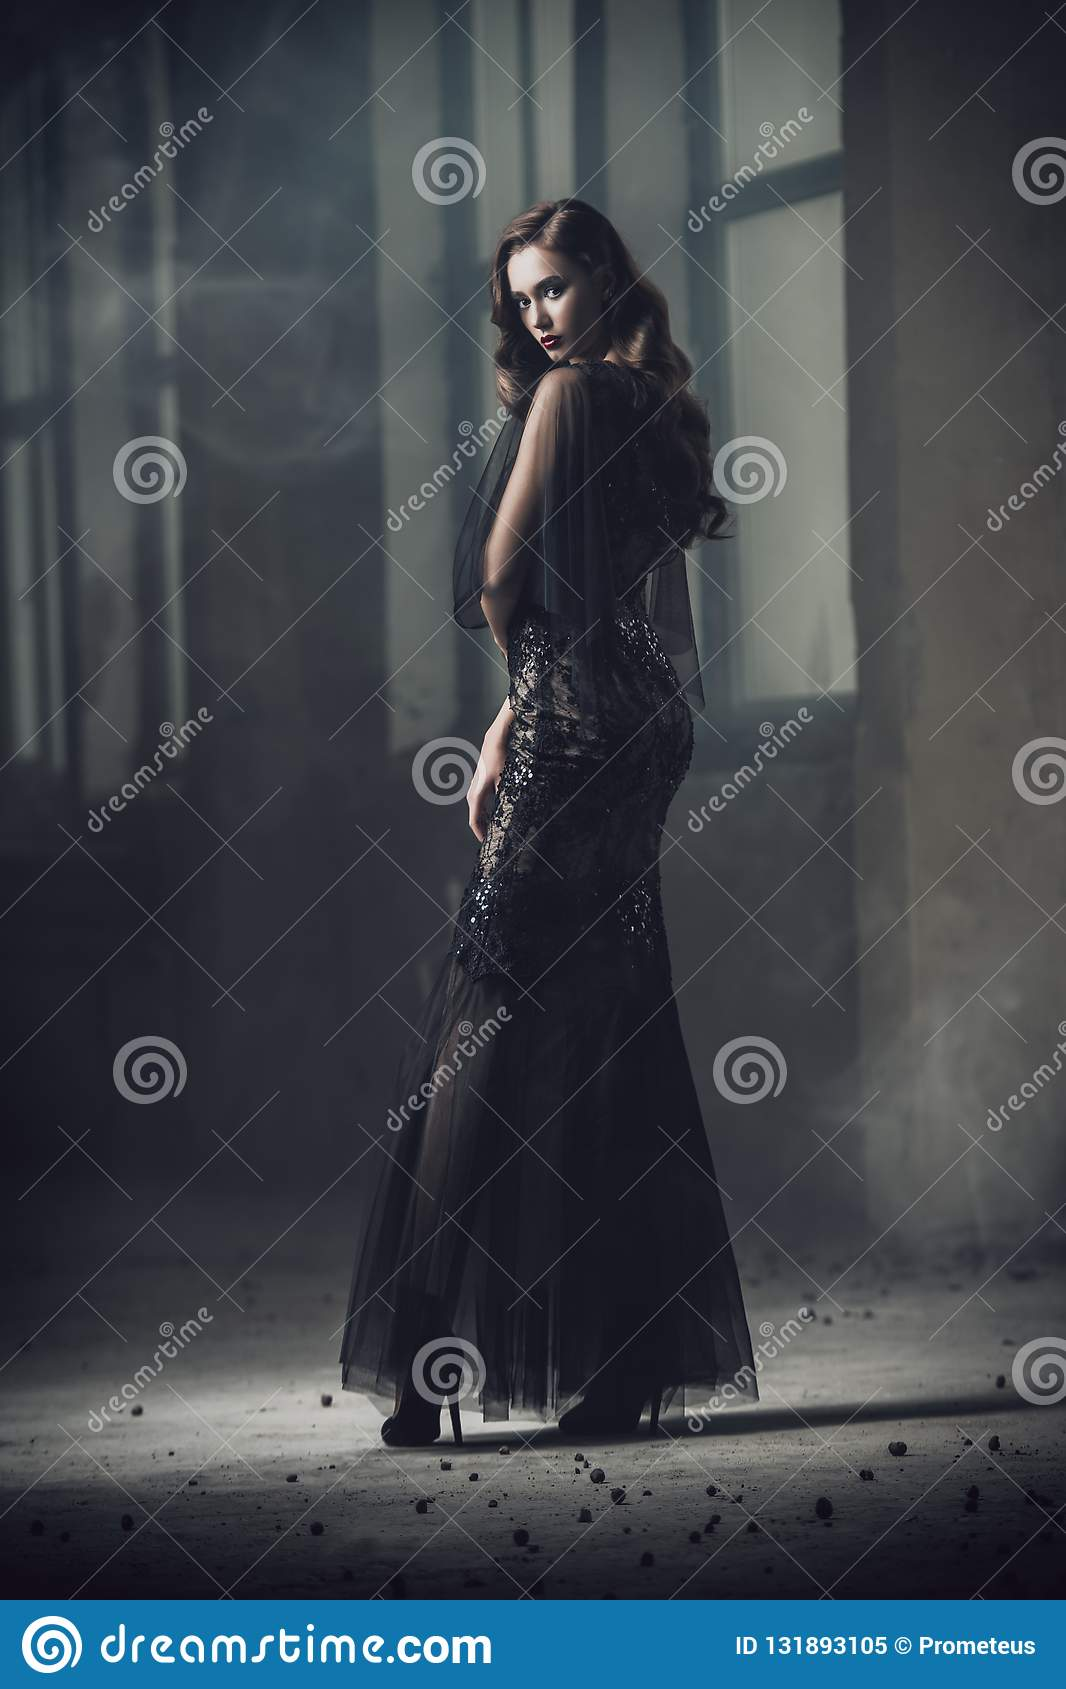 Lady in empty building